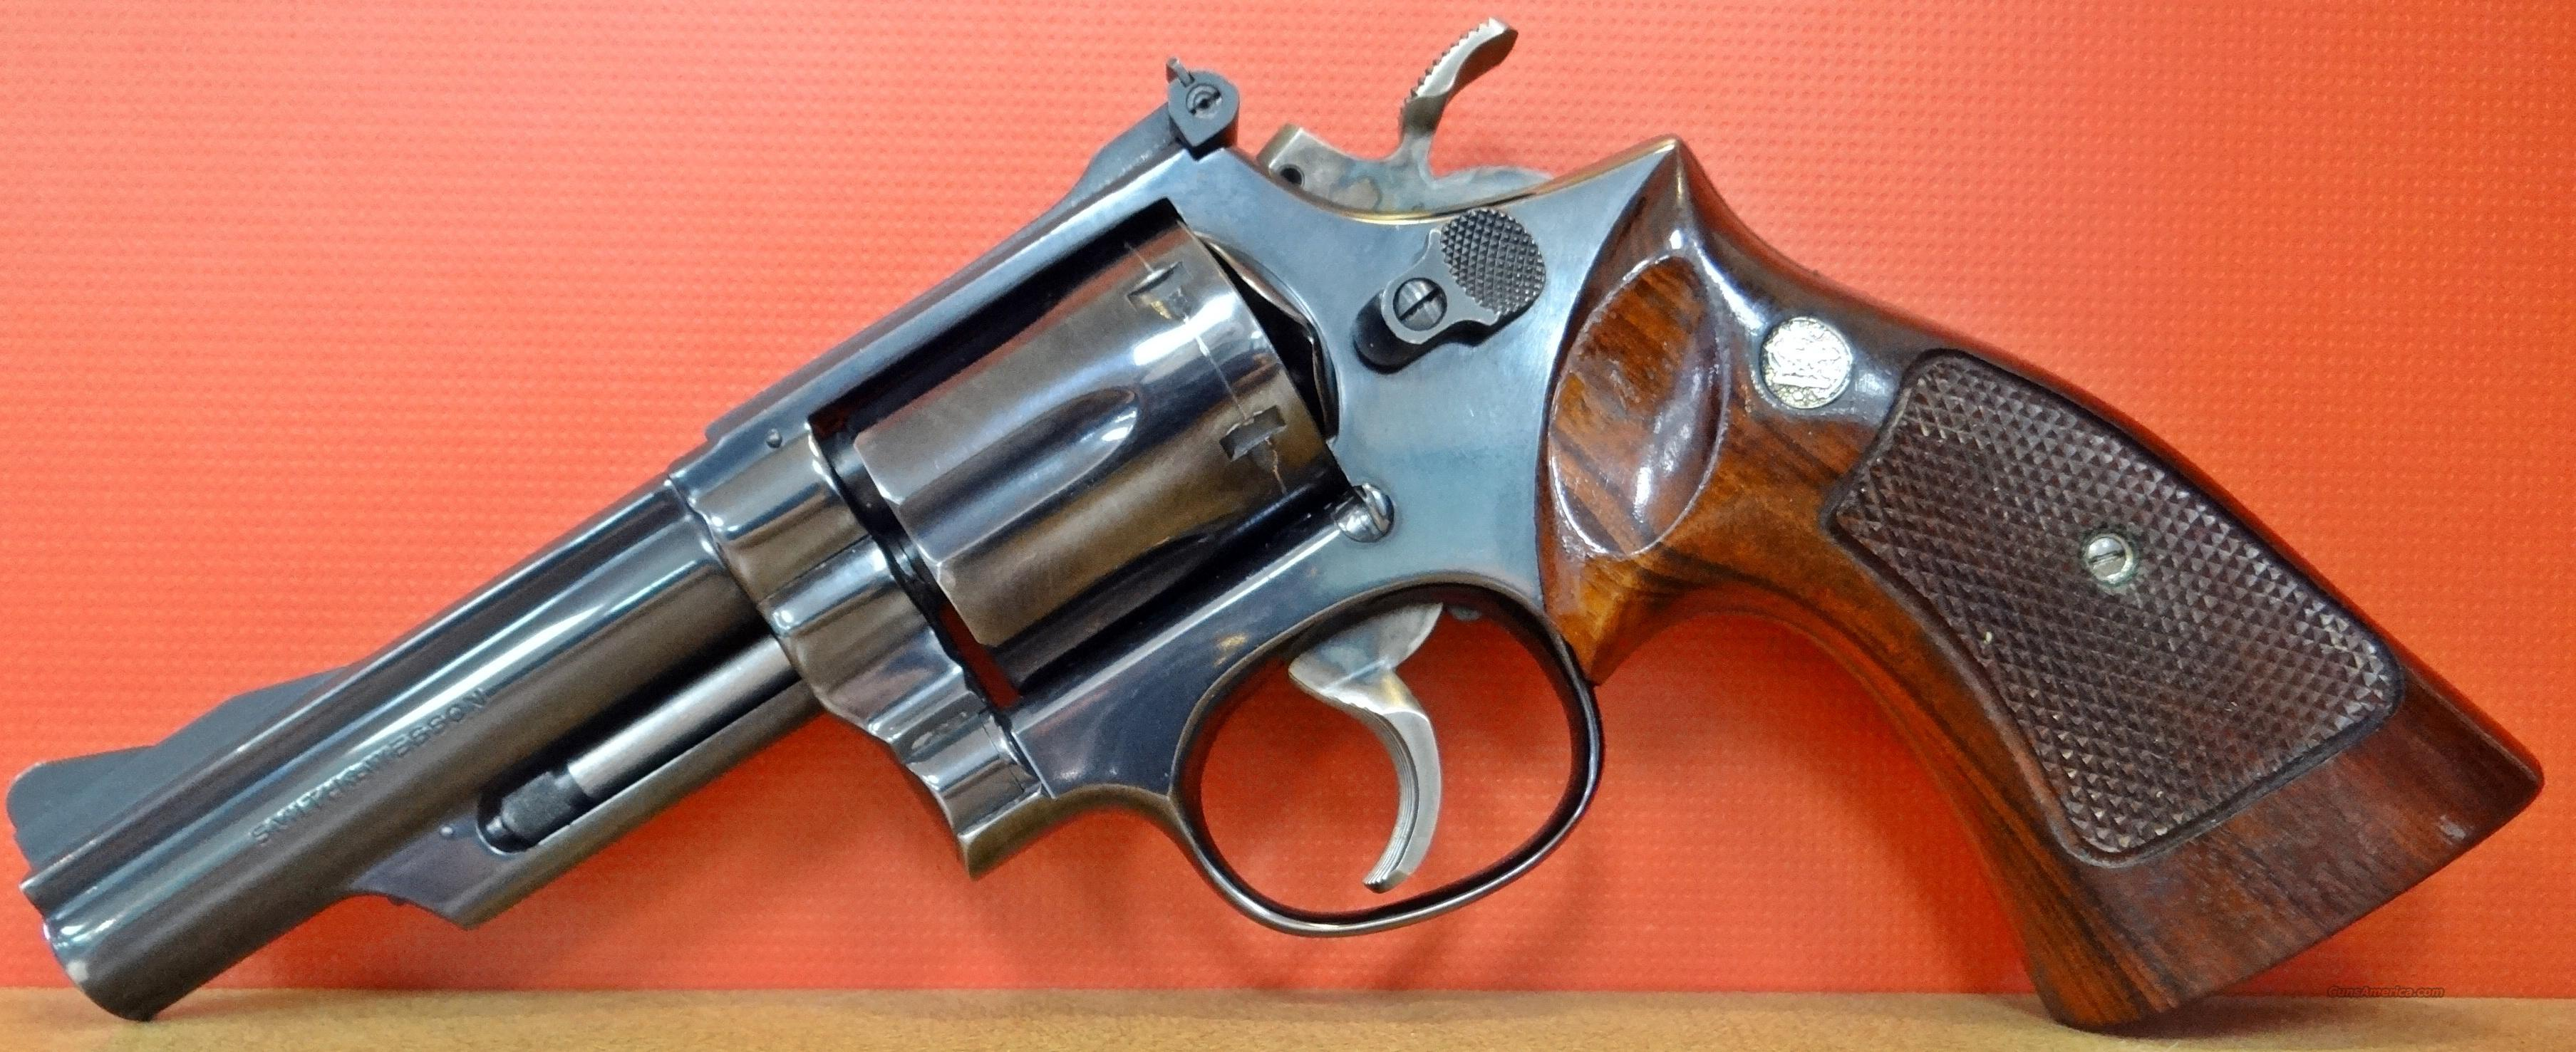 SMITH & WESSON 19-3 .357MAG   Guns > Pistols > Smith & Wesson Revolvers > Full Frame Revolver